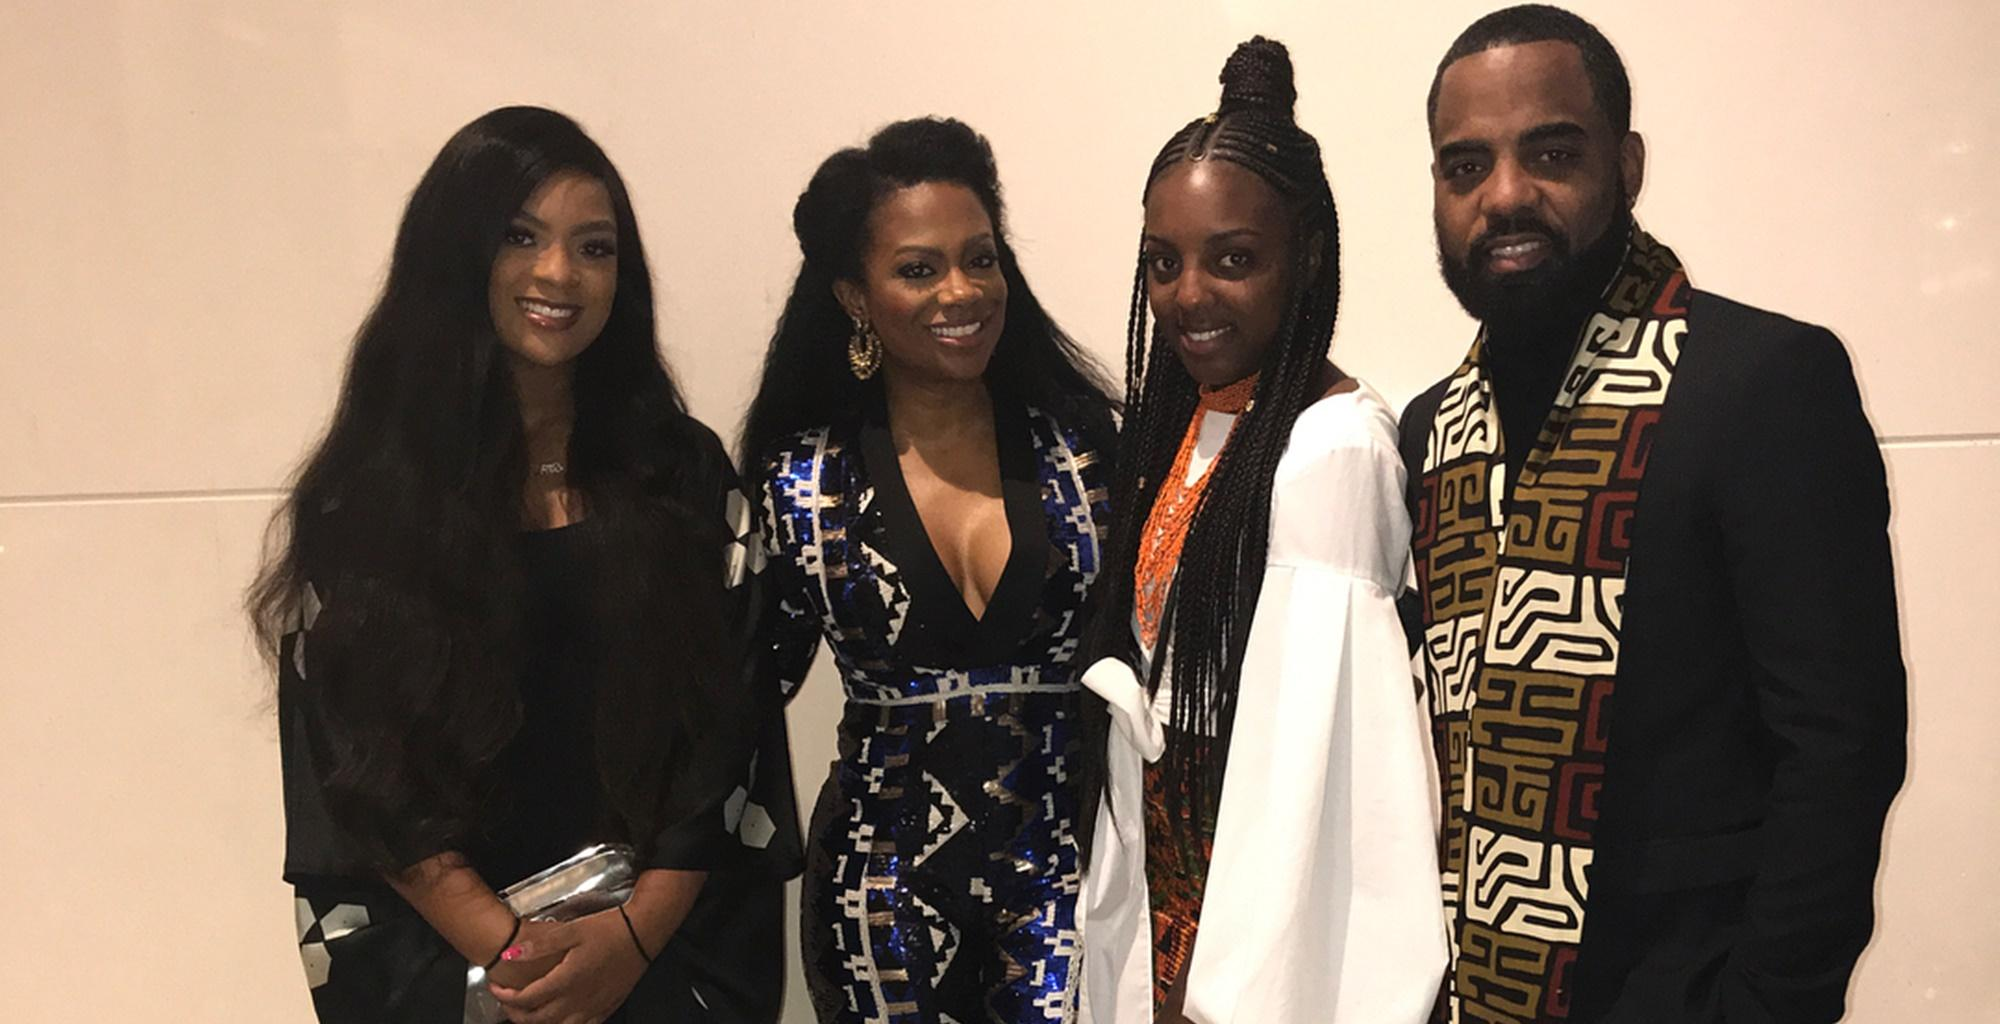 Todd Tucker's Daughter, Kaela Tucker Showed Up At One Of Kandi Burruss Representations Of The Welcome To The Dungeon Show - See The Reason Why Kandi Apologizes To Fan